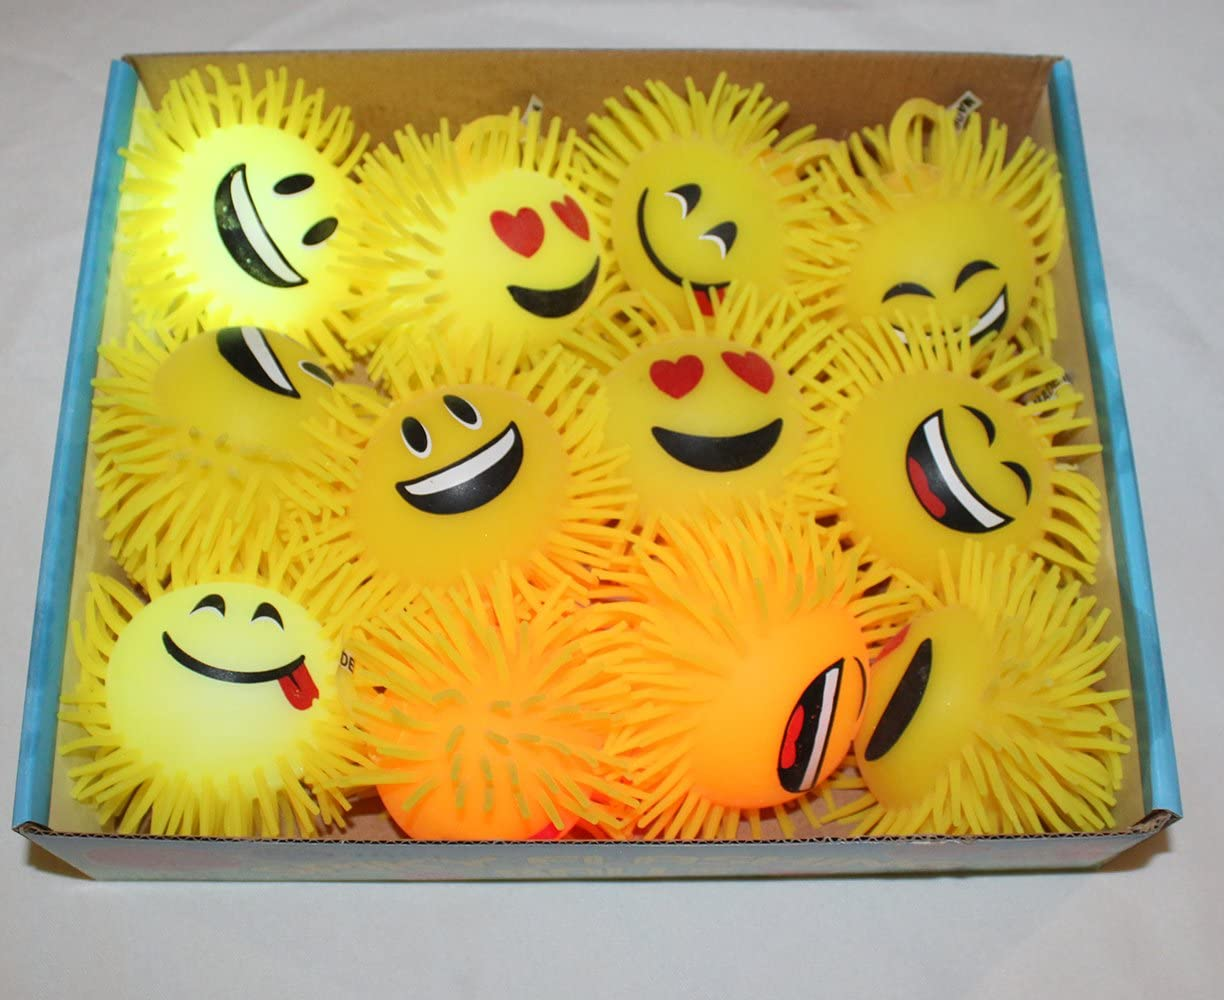 Massage Light Up LED Yellow Flashing Rubber 4 Balls for Kids Party goodie bags giveaways GPC Inc Emoji Spiky 12-Pack Massage Light Up LED Yellow Flashing Rubber 4 Balls for Kids Party goodie bags giveaways